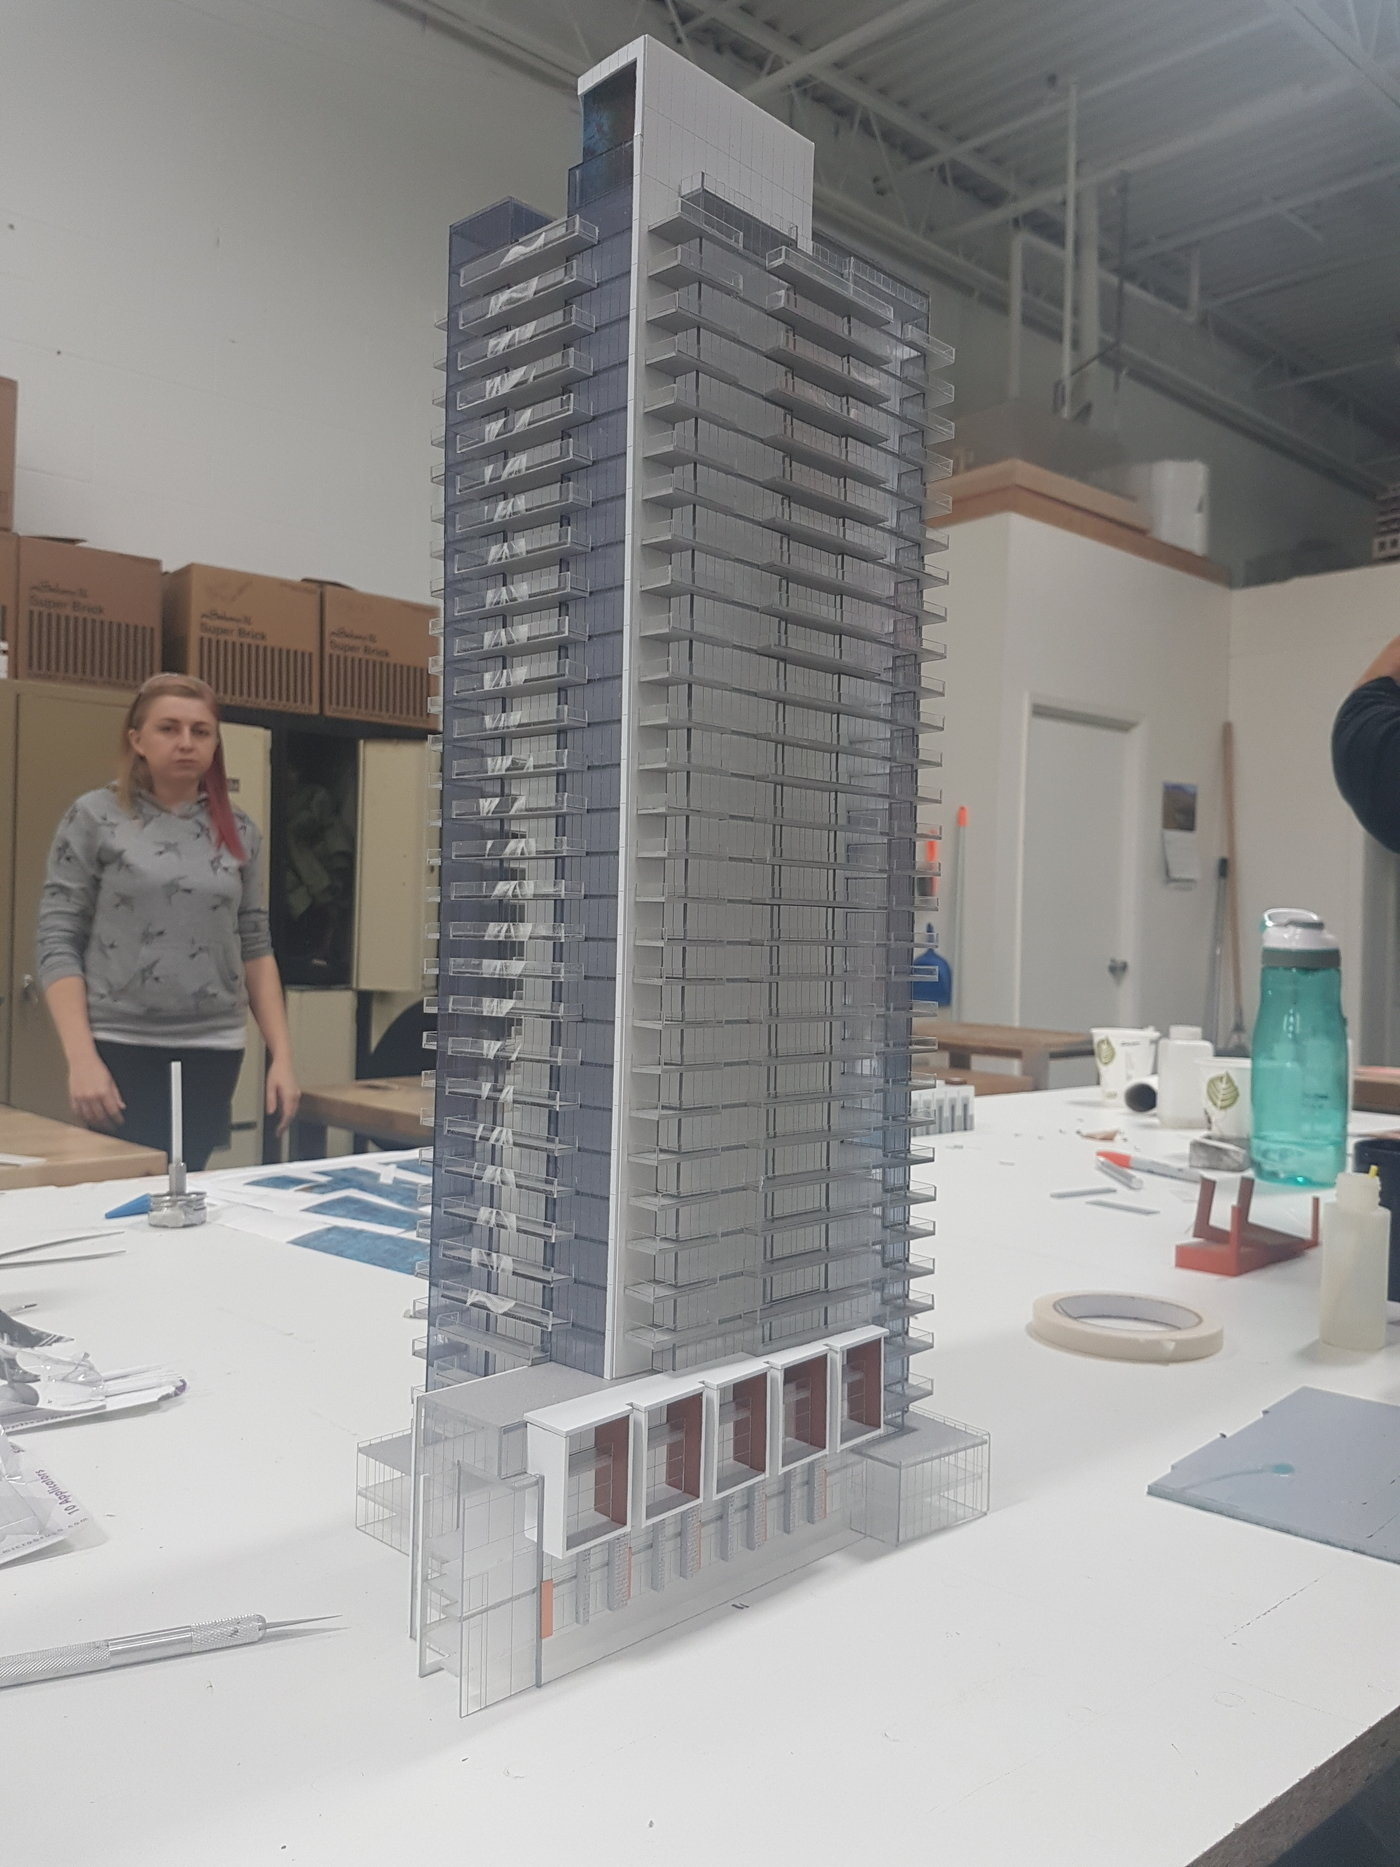 myles burke architectural models by paige reiche at coroflot com